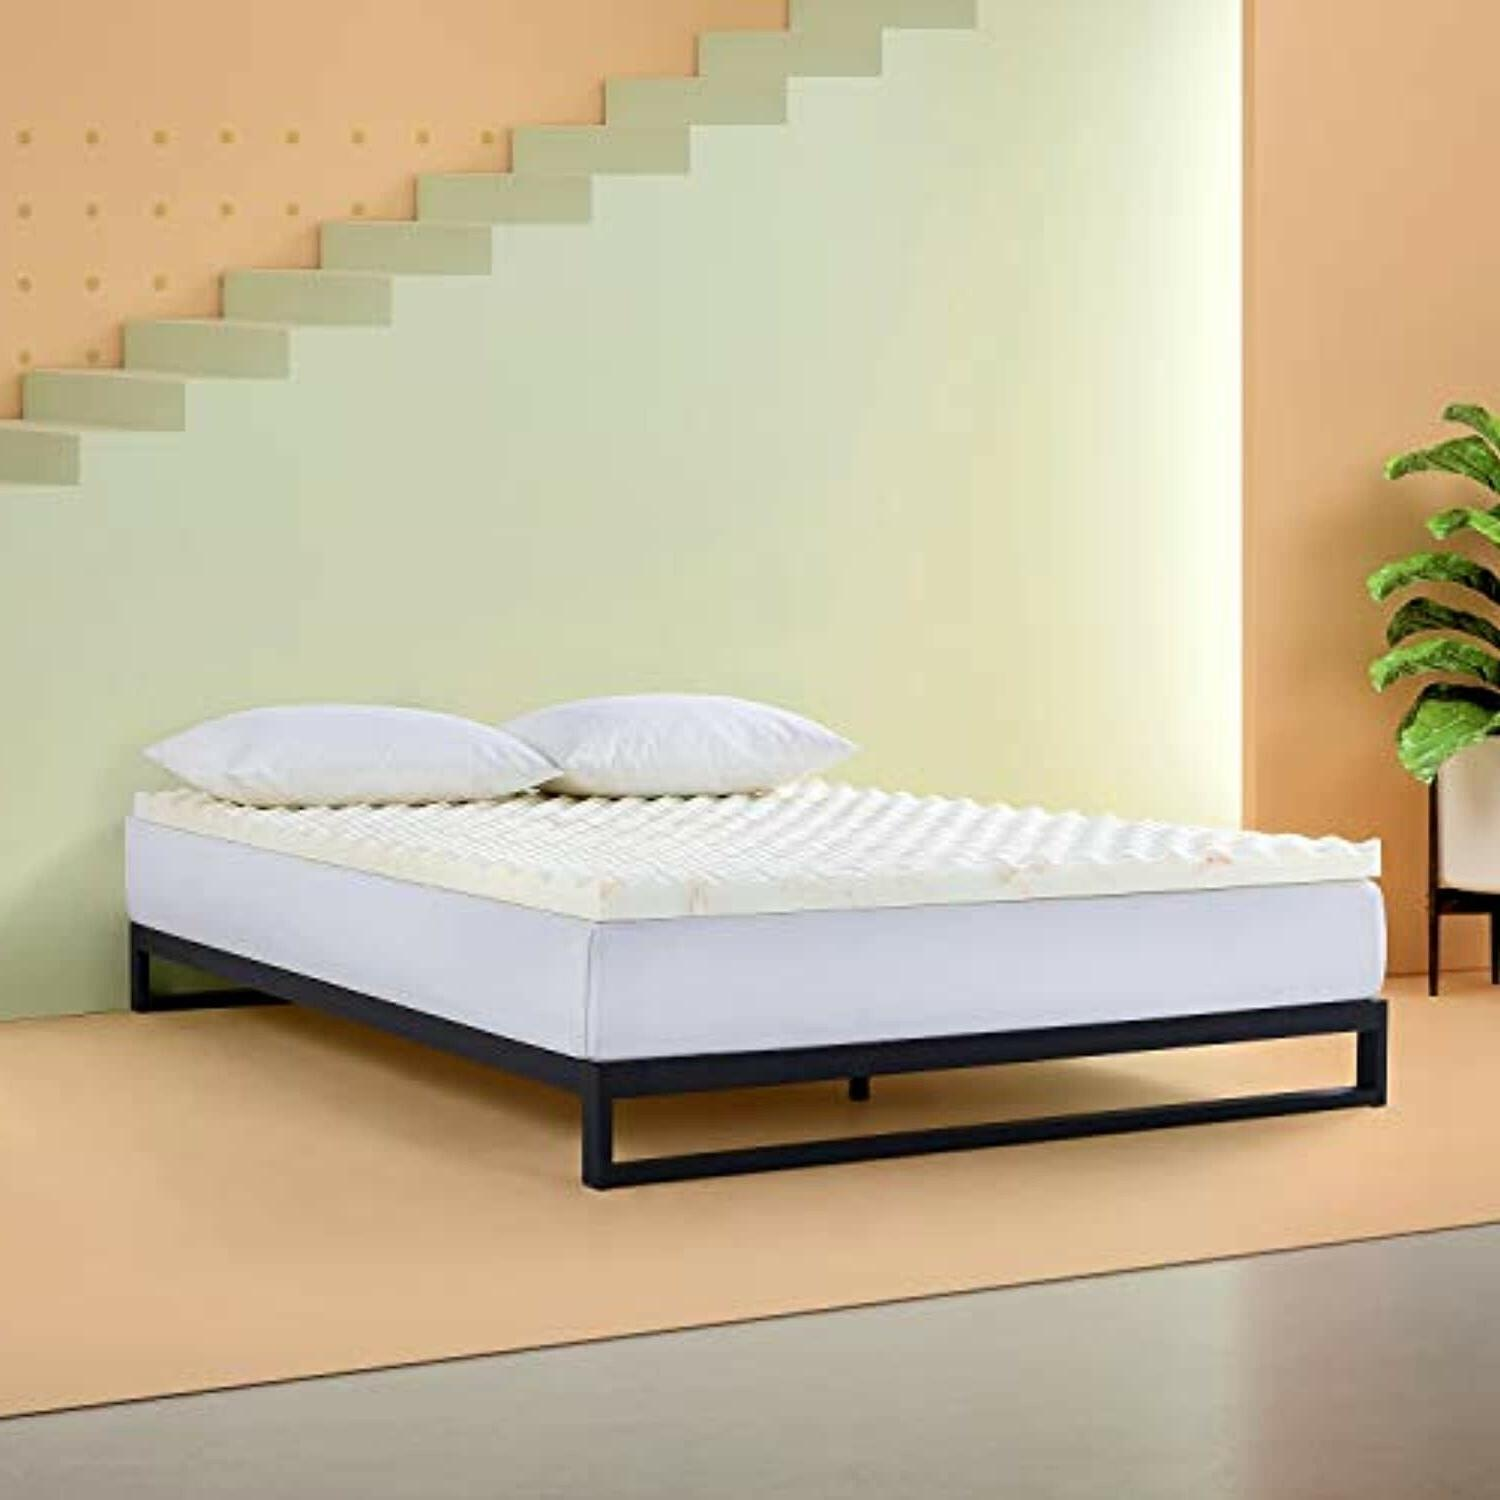 Zinus - Cooling Convoluted Memory Foam TWIN